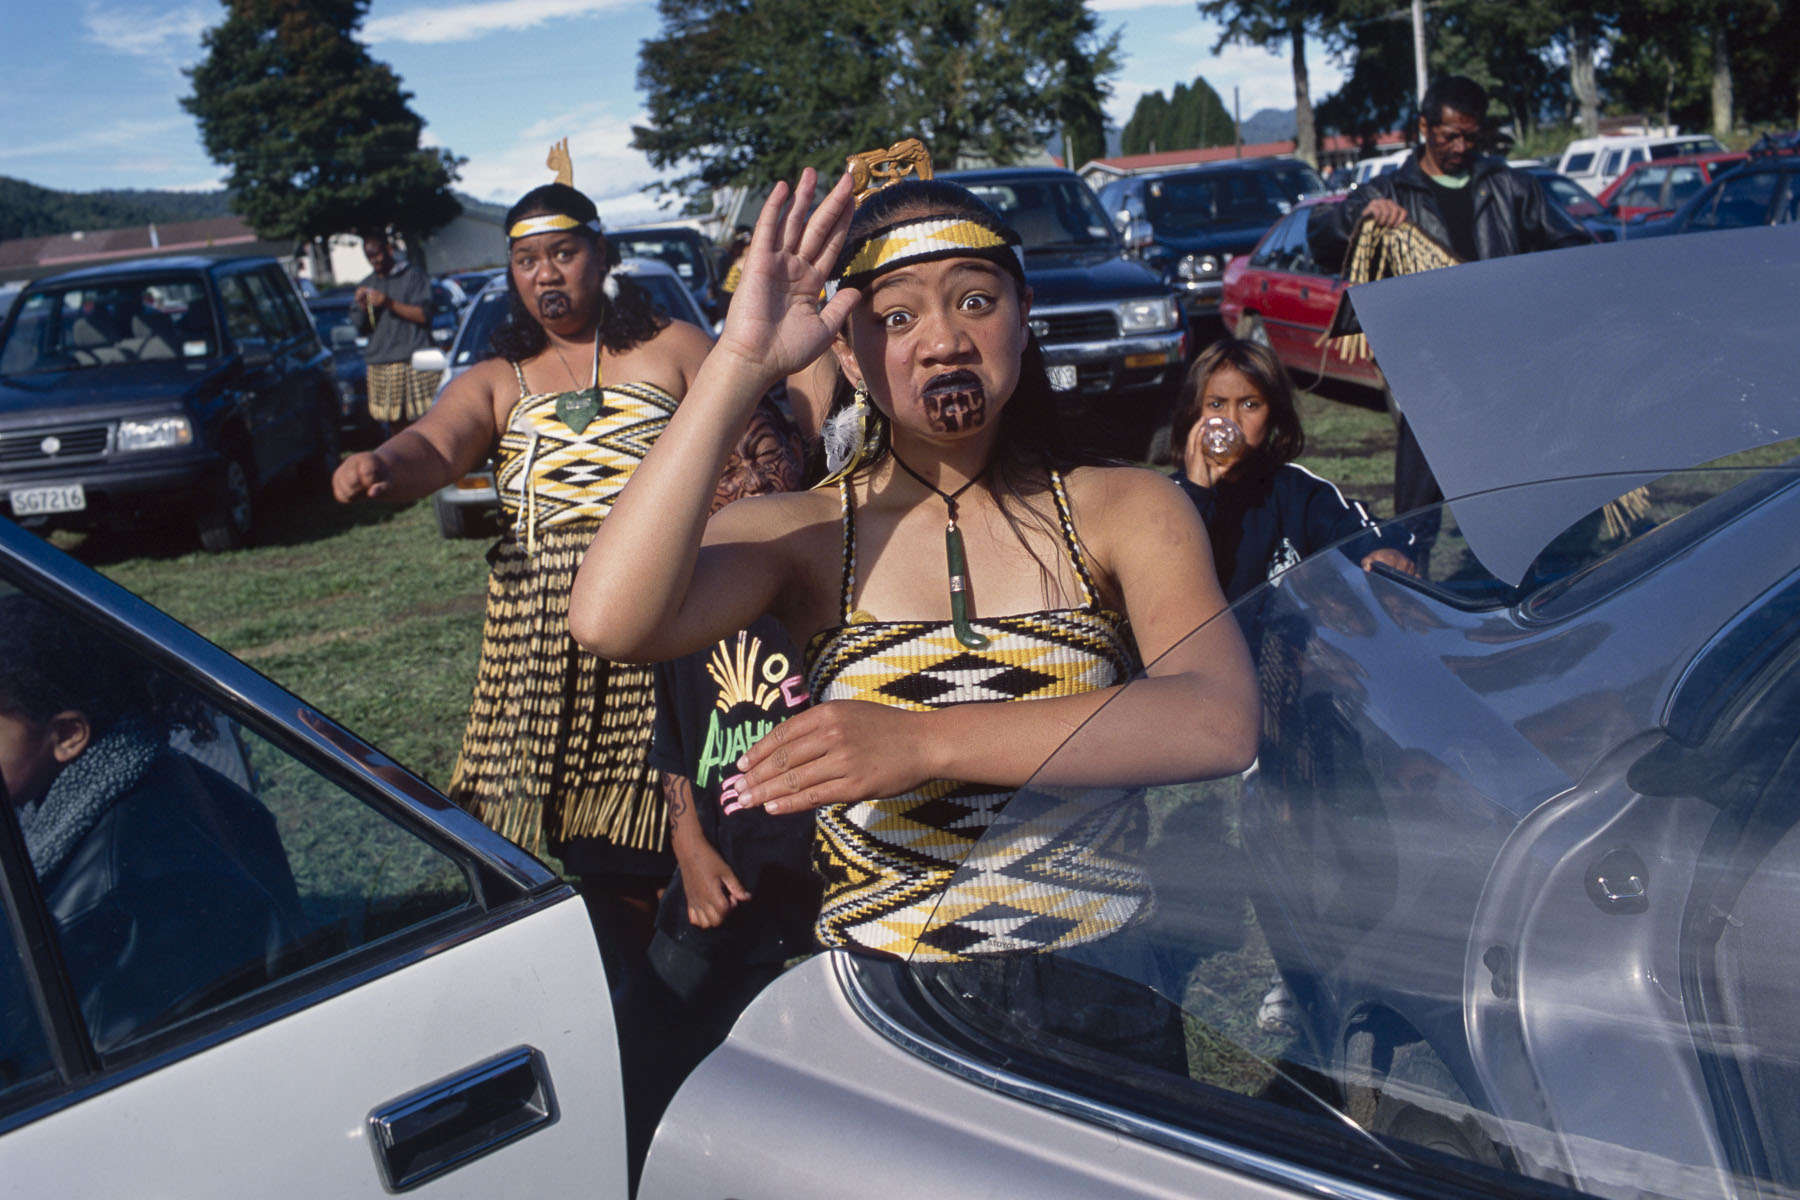 A Maori haka performer attends a culture folk arts festival in May 2000